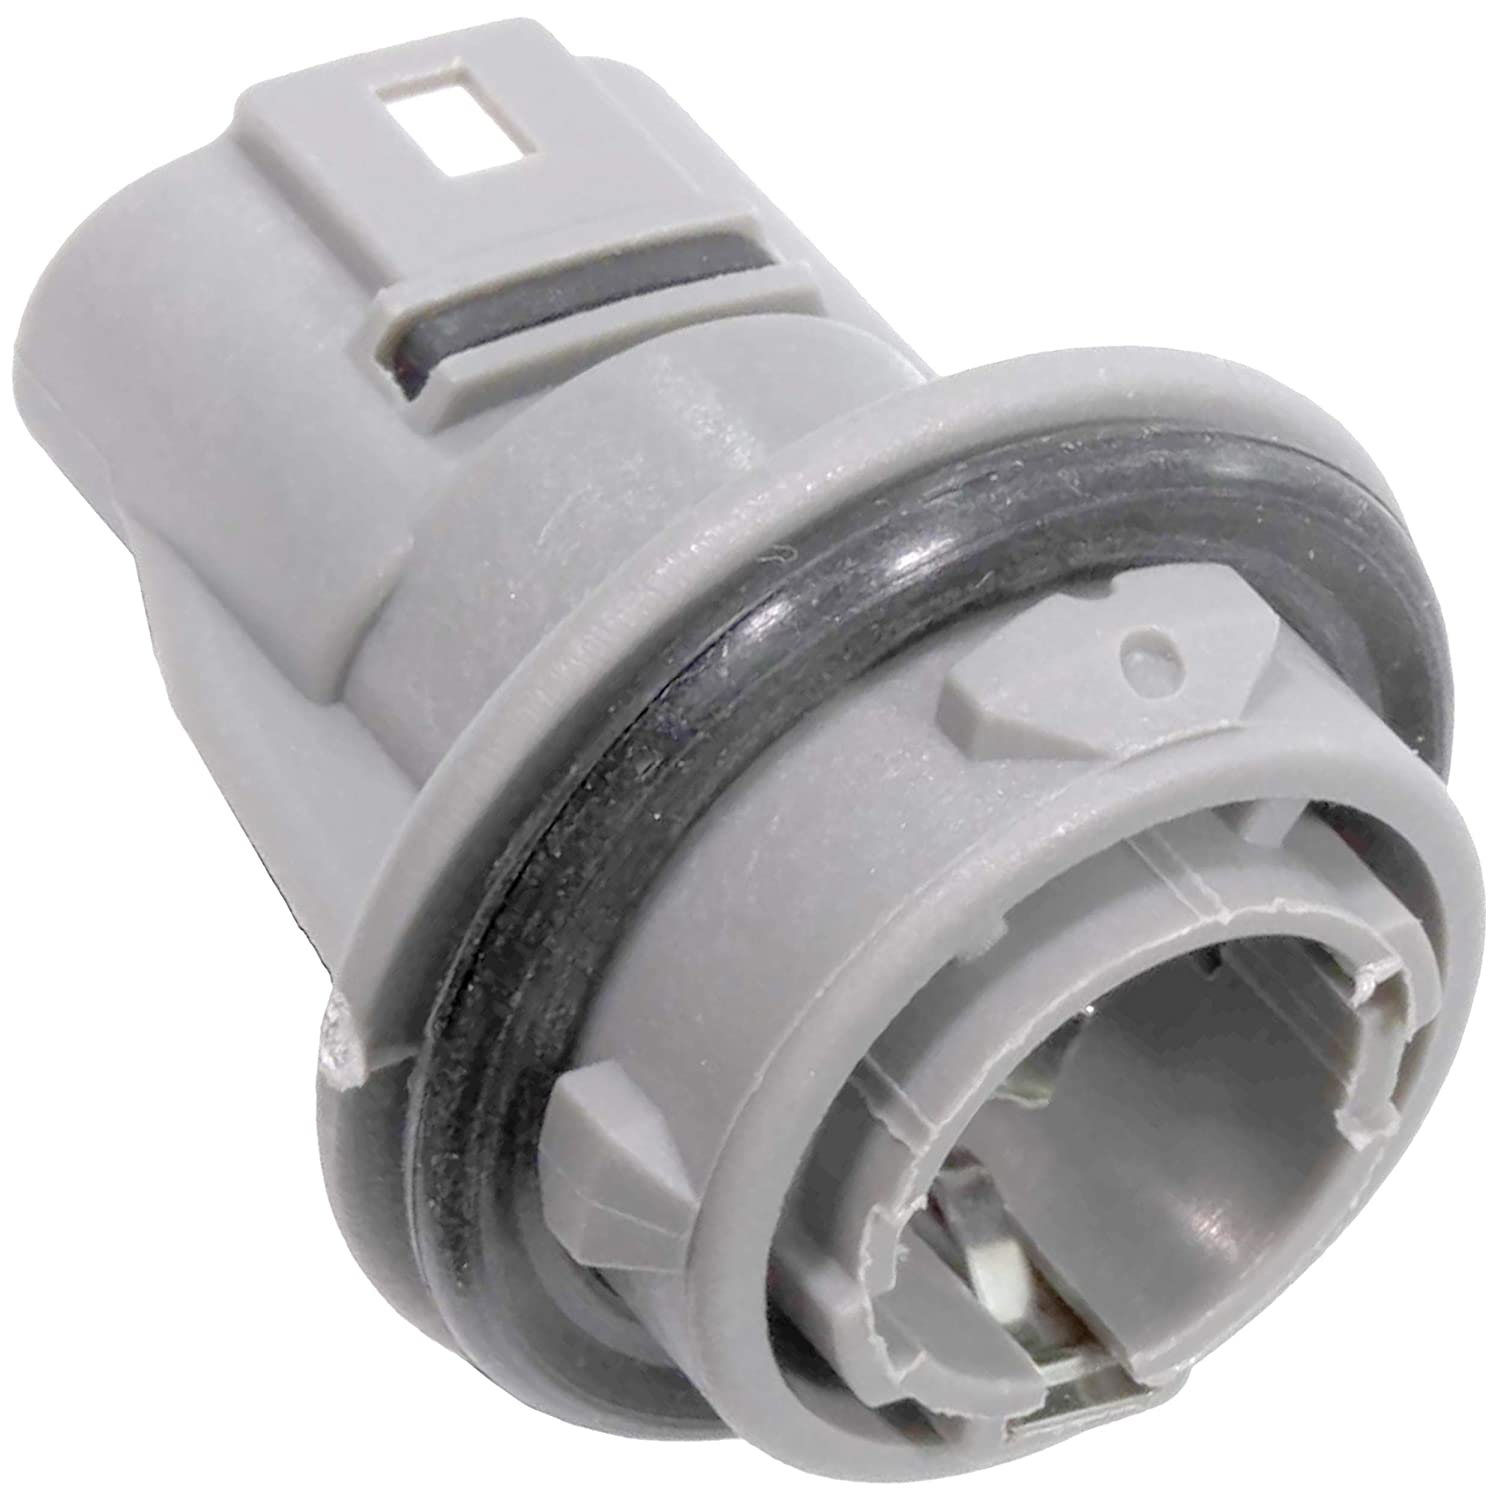 APDTY 133640 Turn Signal Light Bulb Plastic Socket Holder Gray Color on